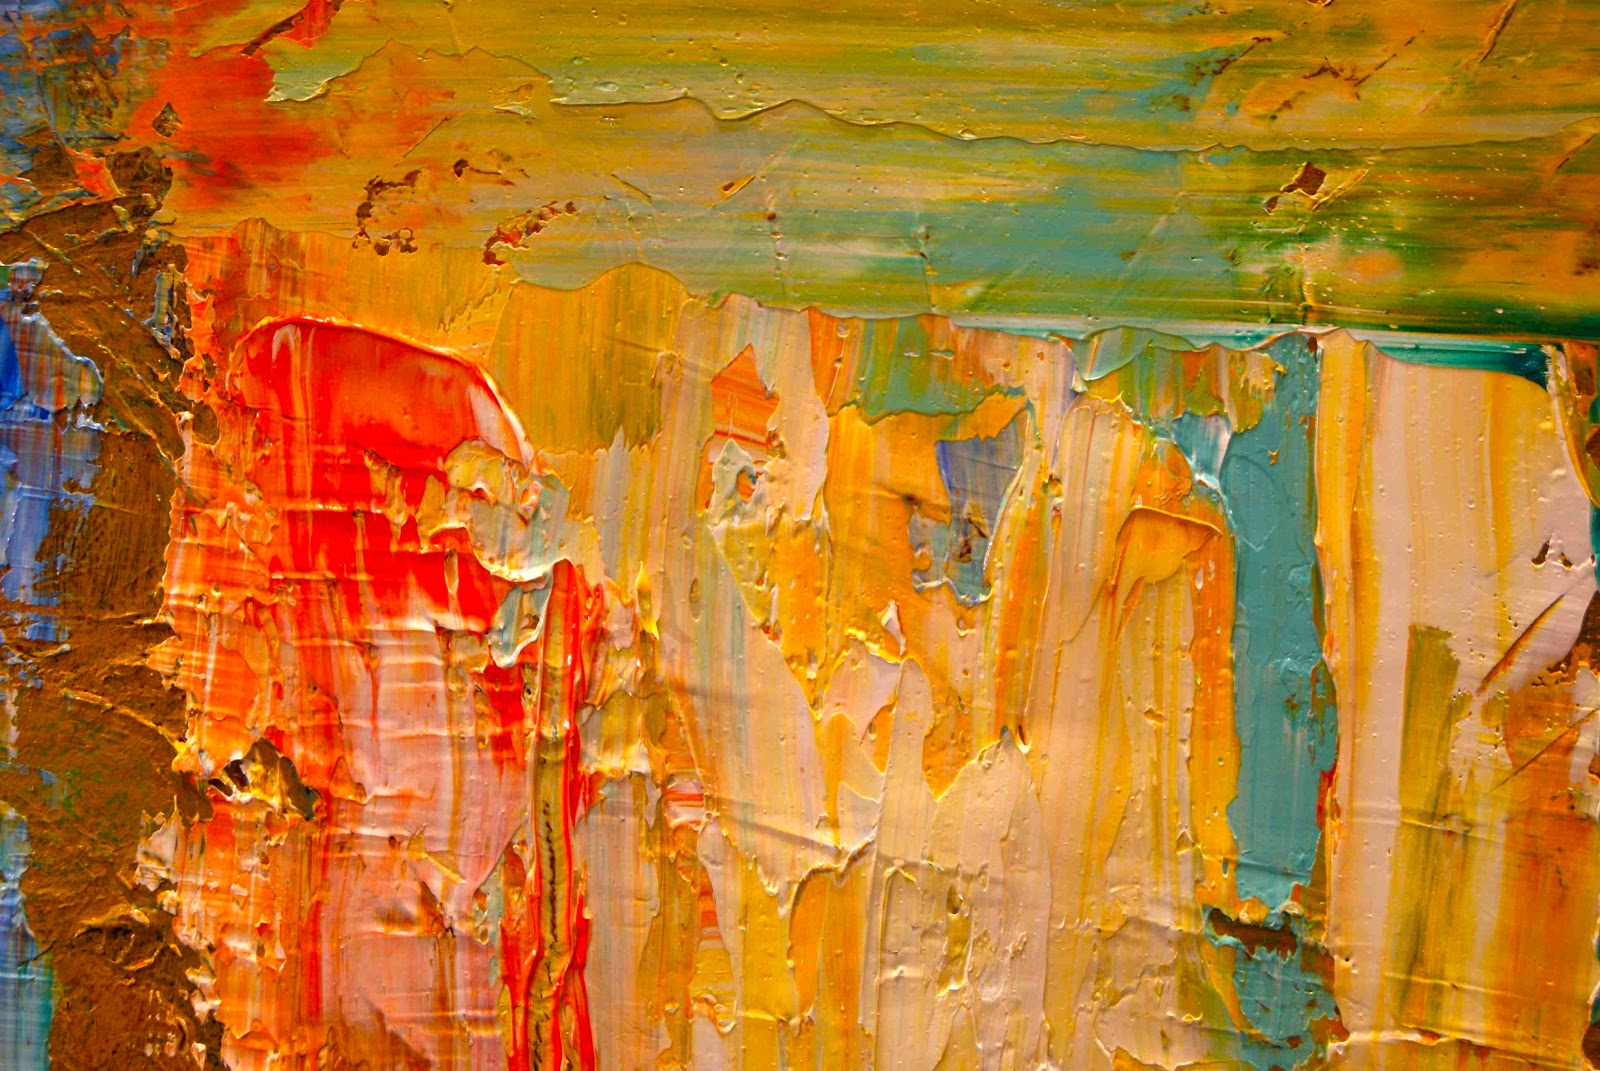 Paintings By Theresa Paden Abstract Expressionistic